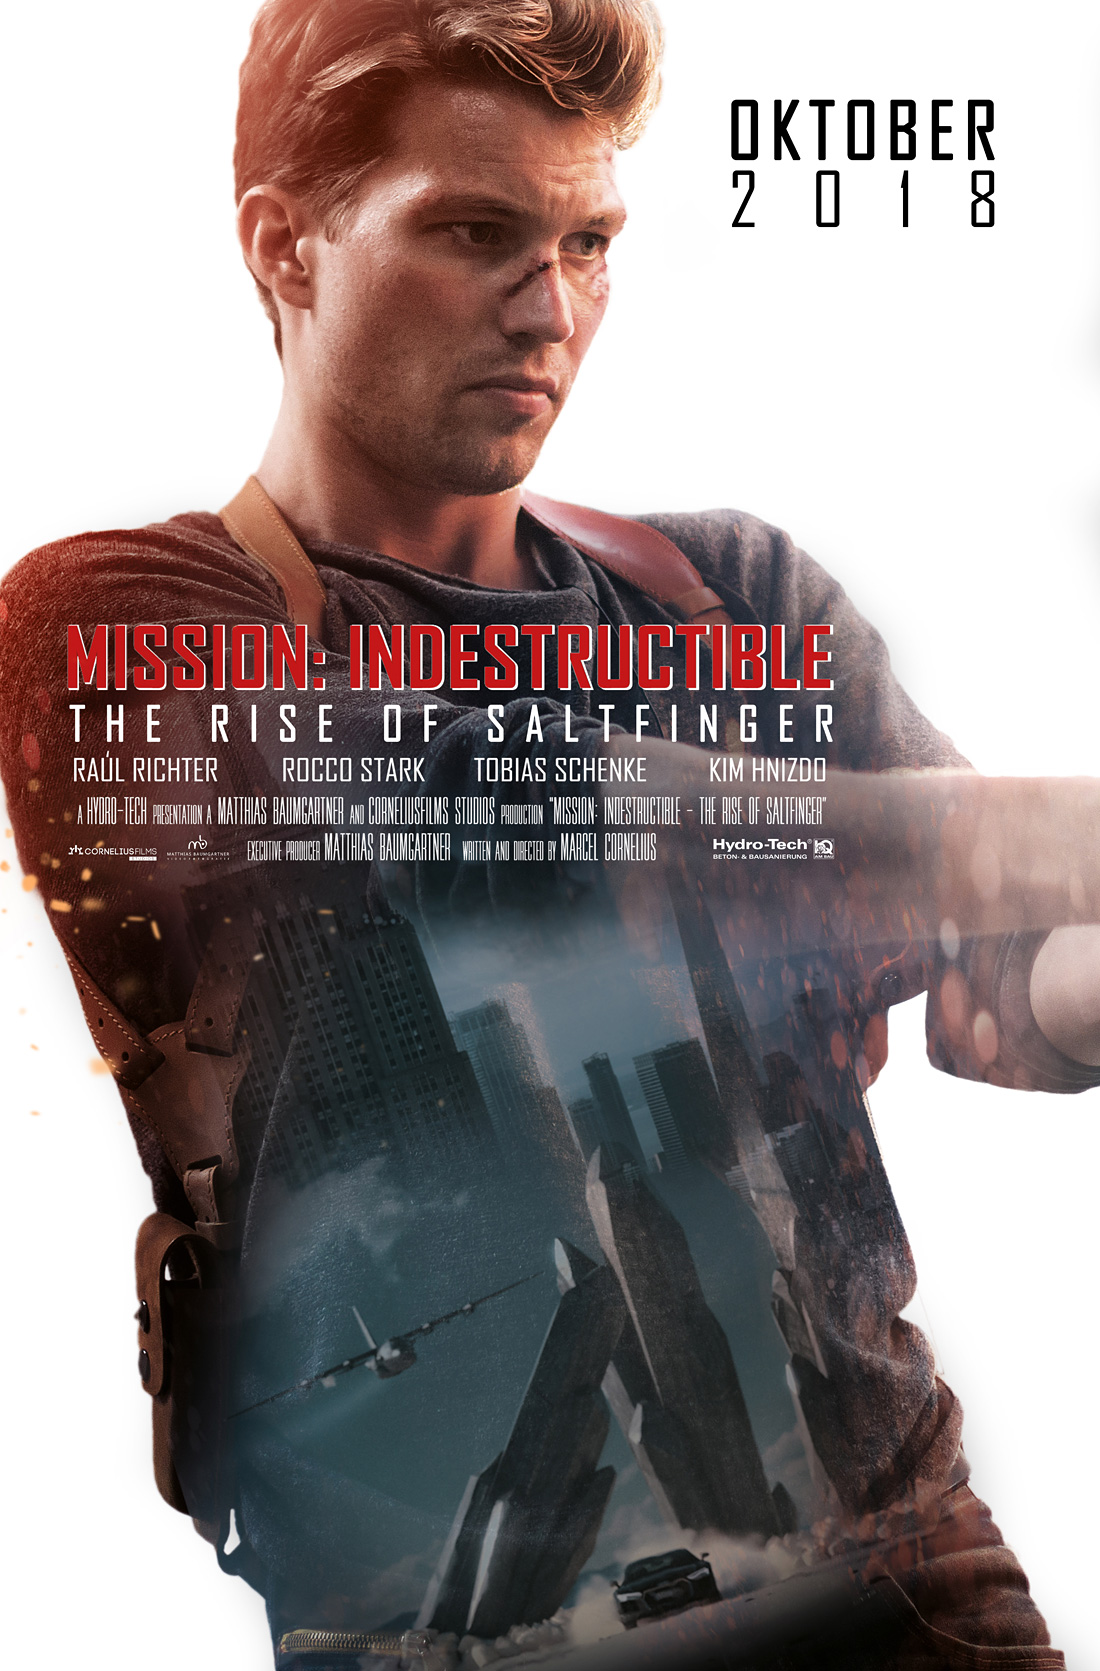 Mission Indestrucible – The Rise of Saltfinger